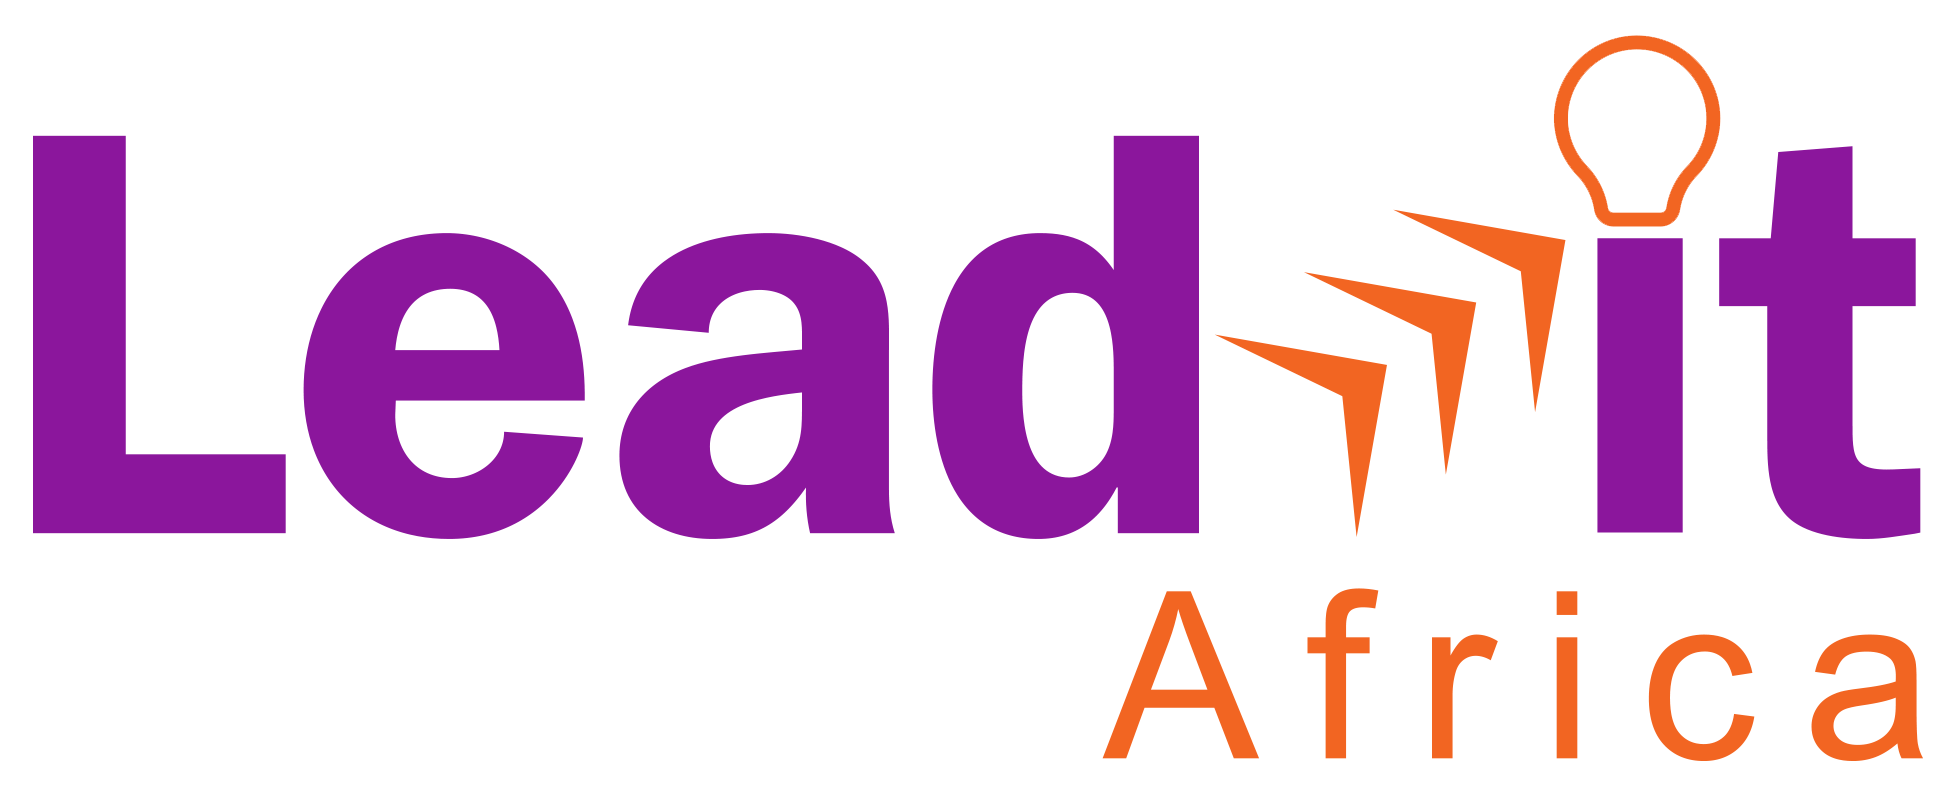 Lead it – Africa LOGO